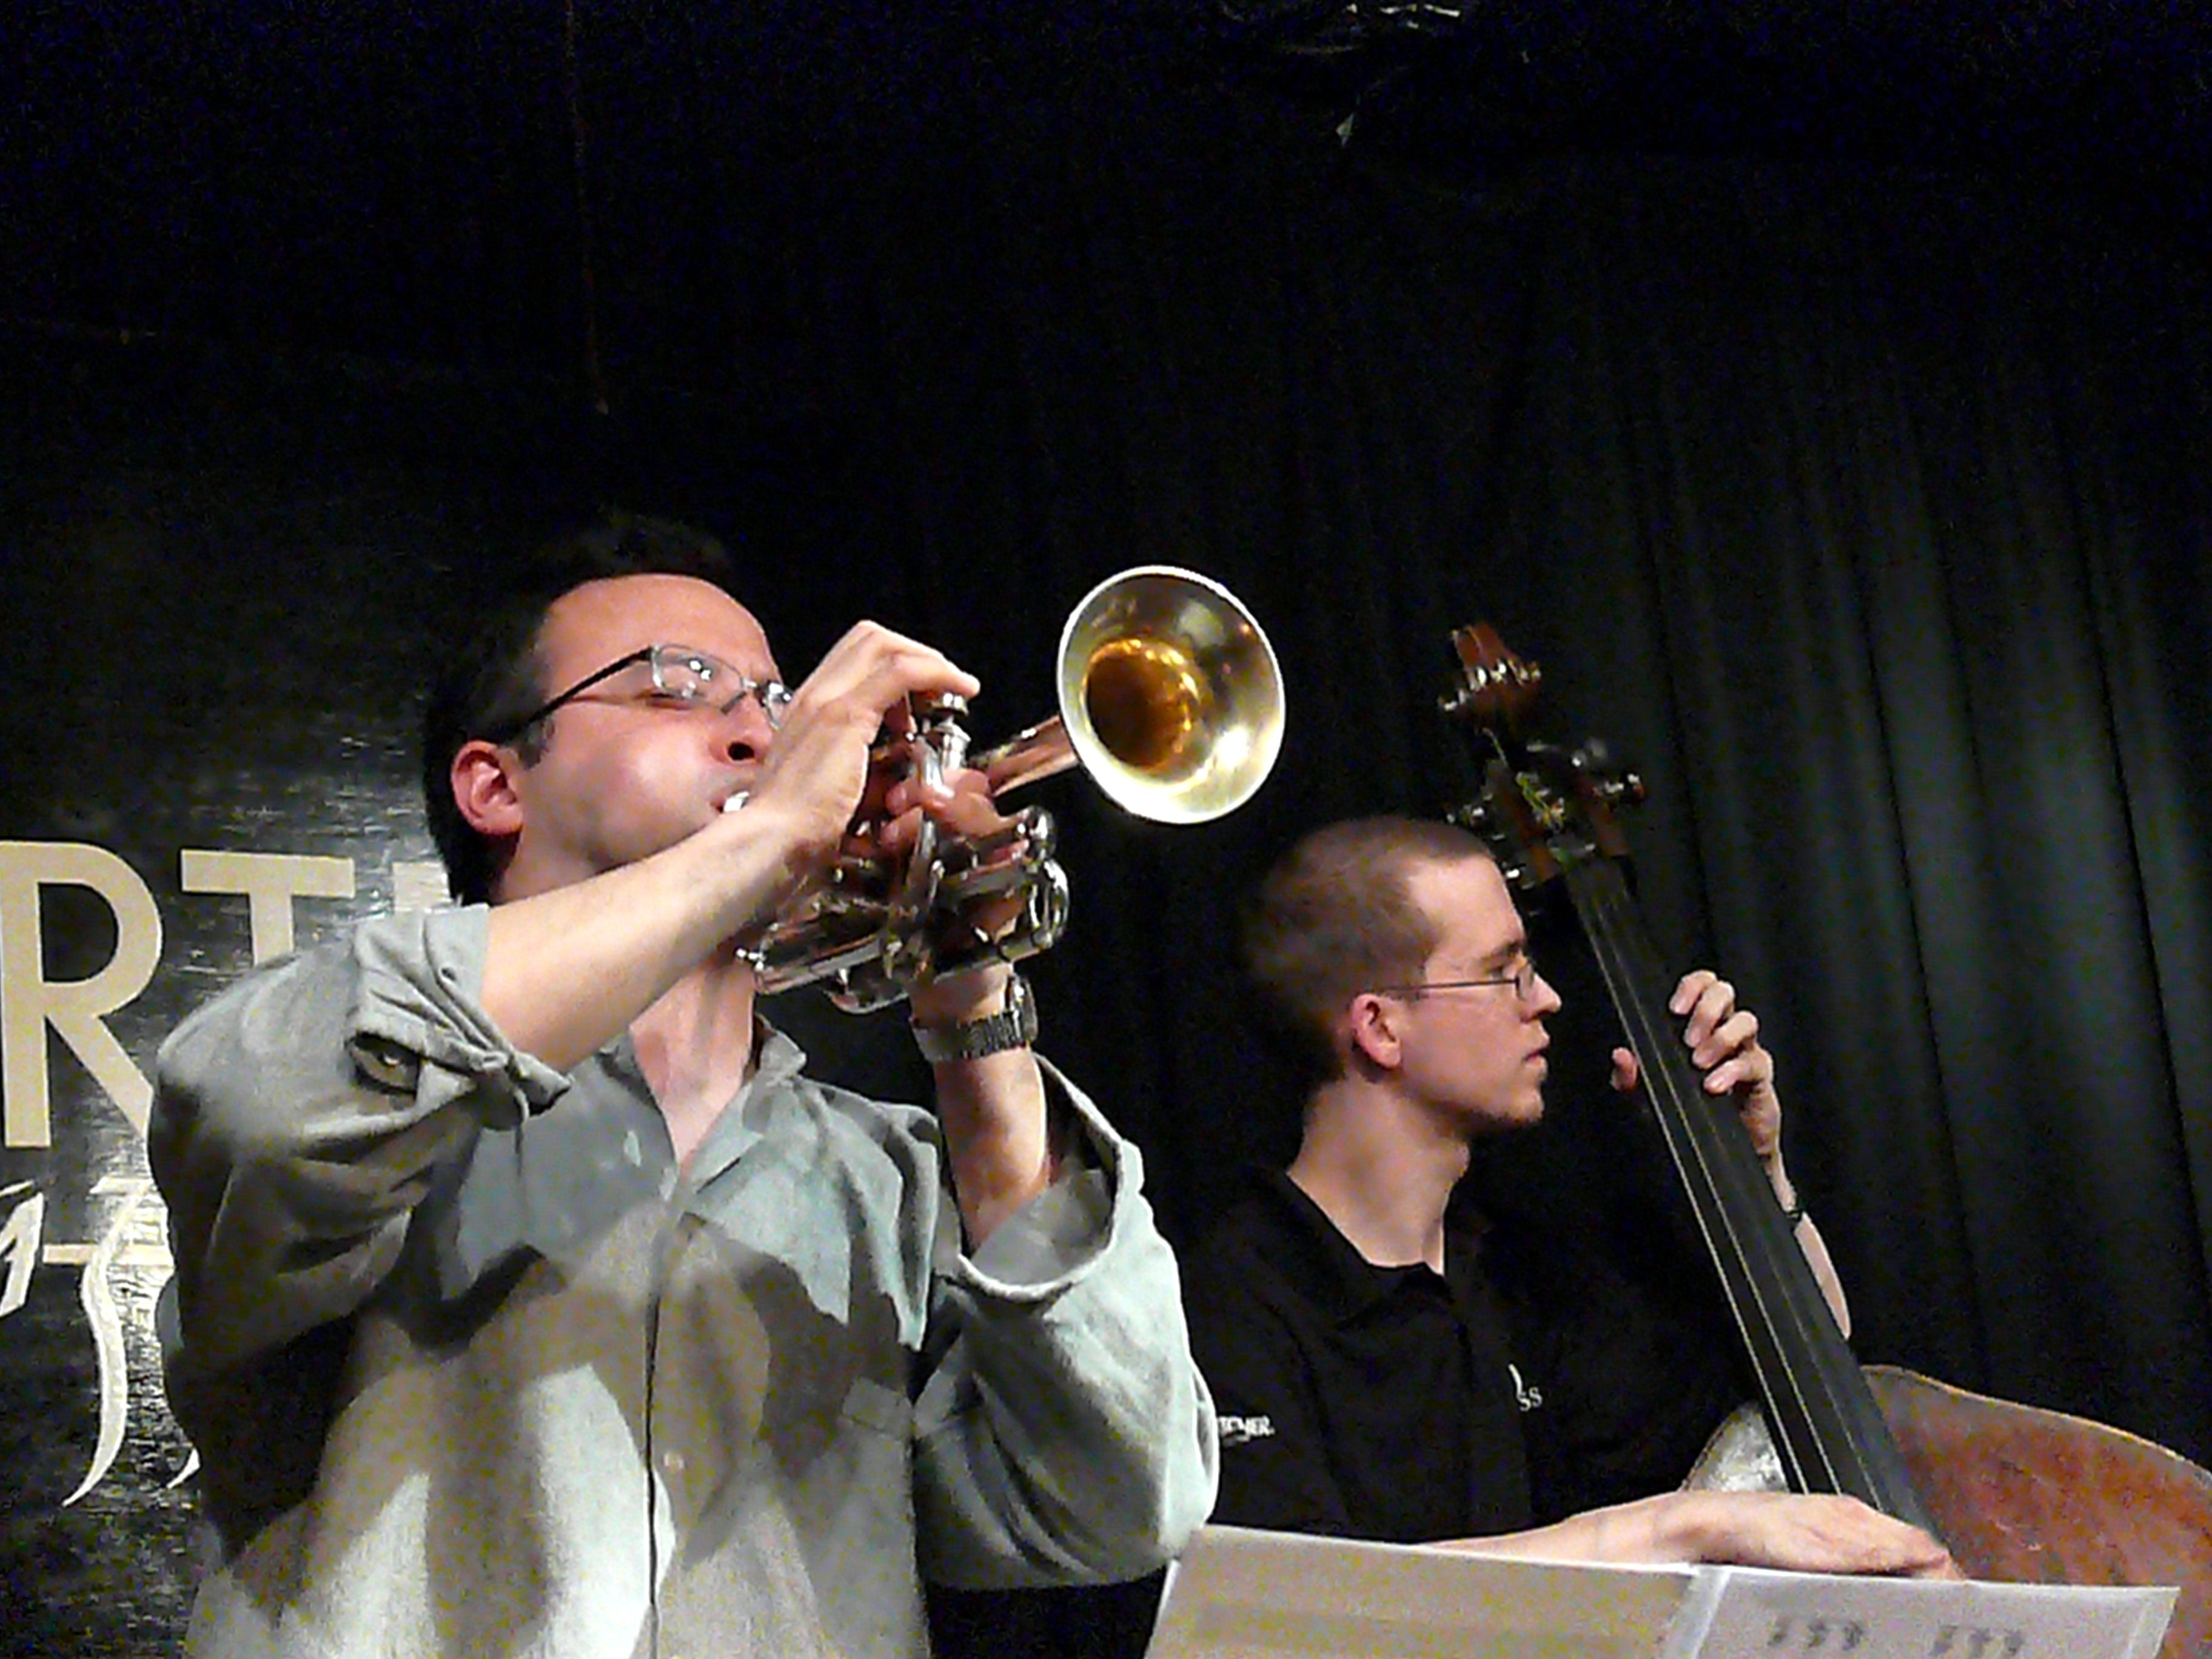 Taylor Ho Bynum and Dominic Lash at the Vortex, London